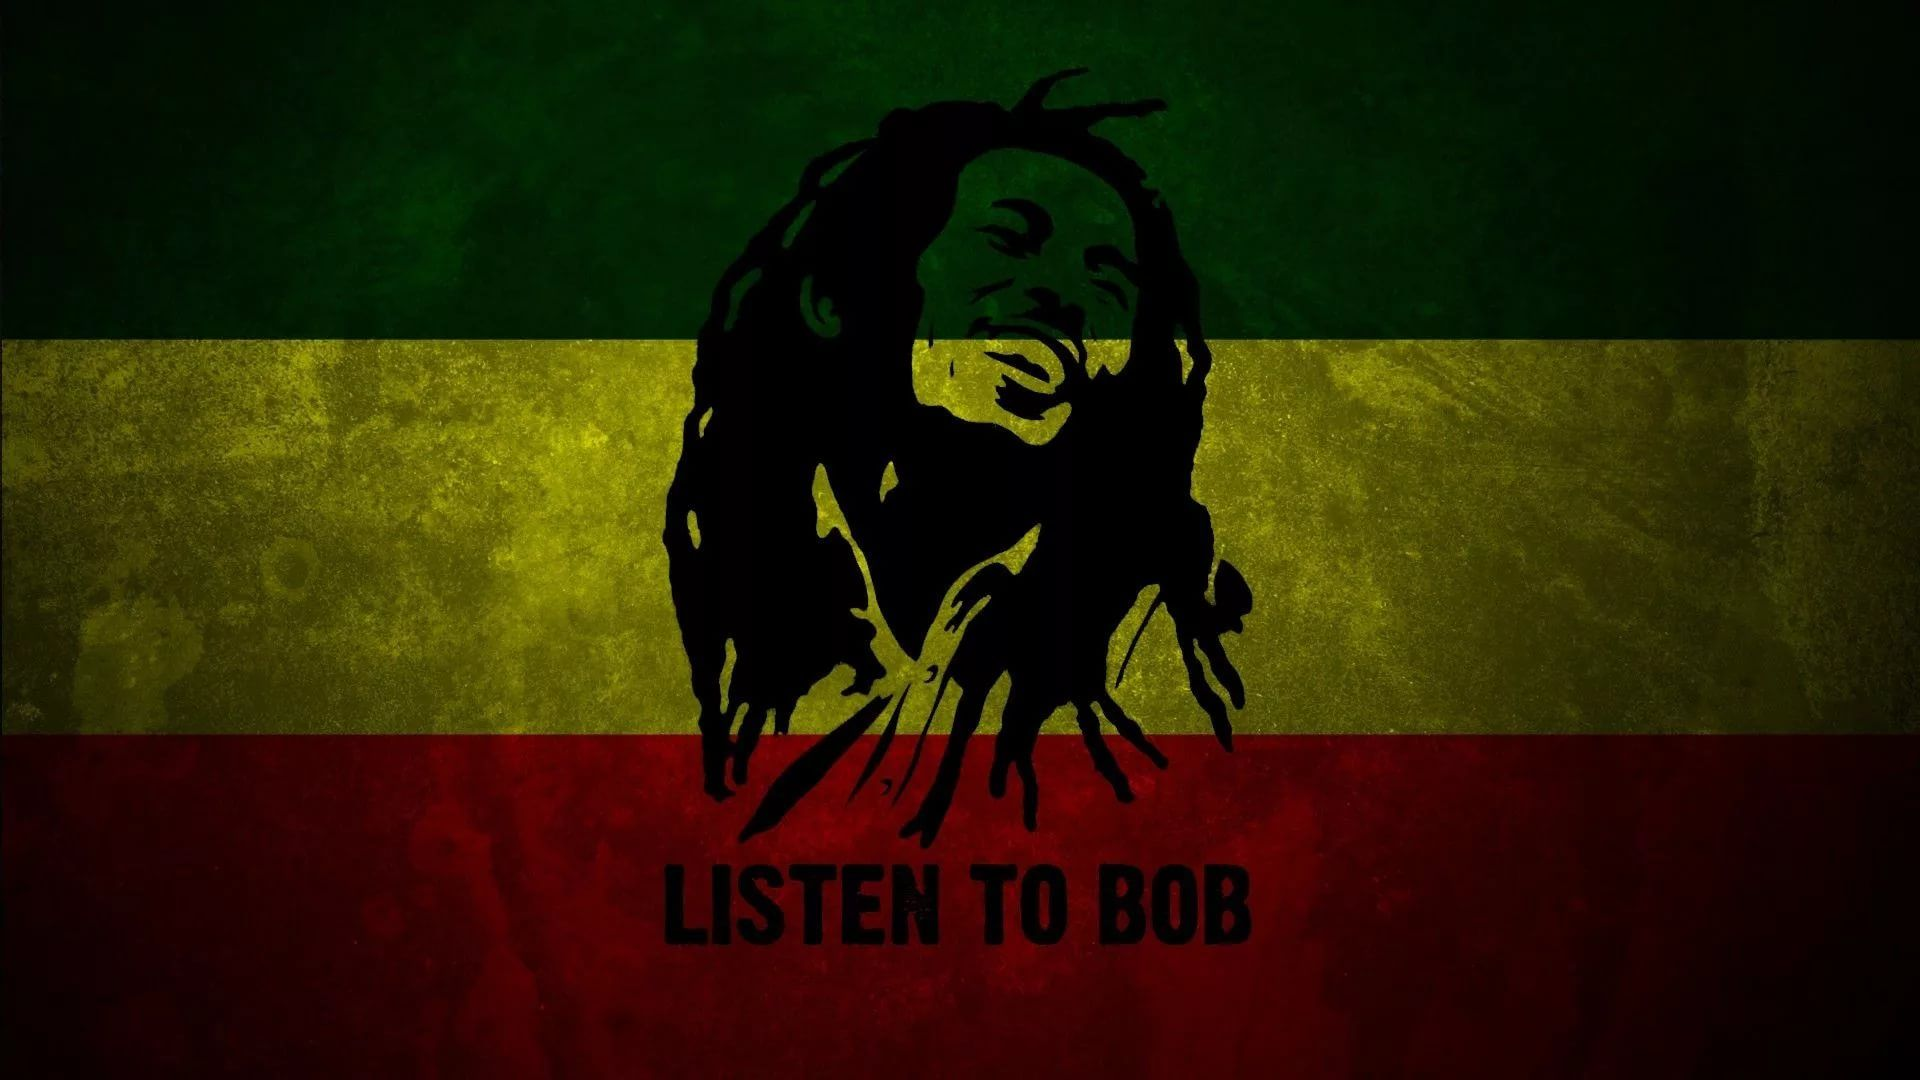 Bob Marley Cool Wallpaper